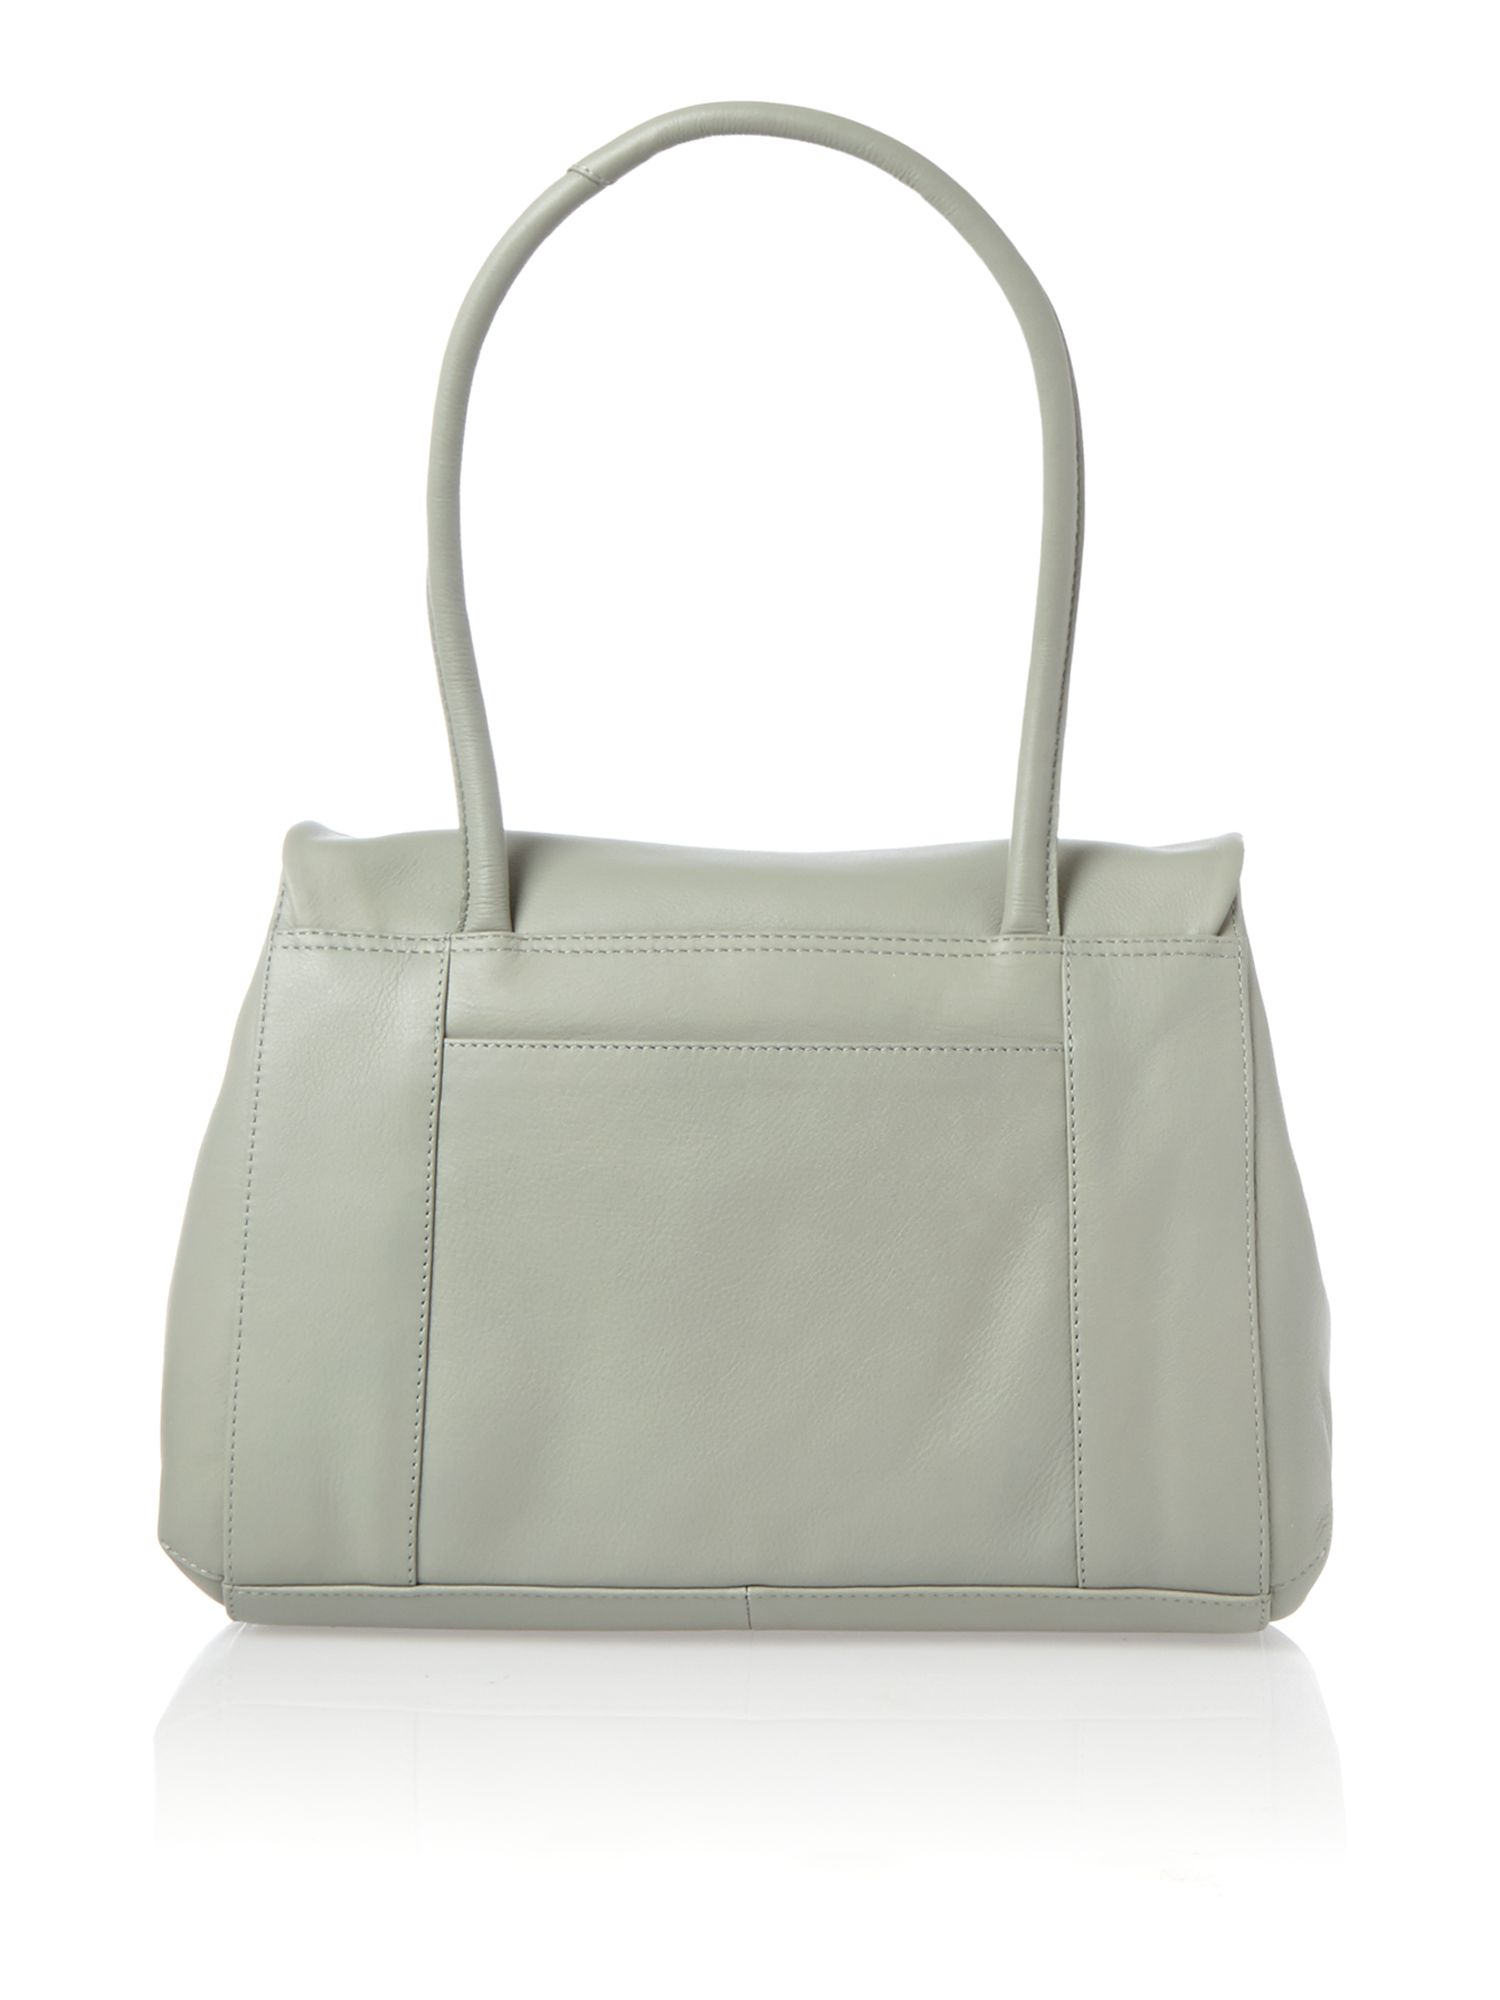 Waterloo medium flapover tote blue leather bag